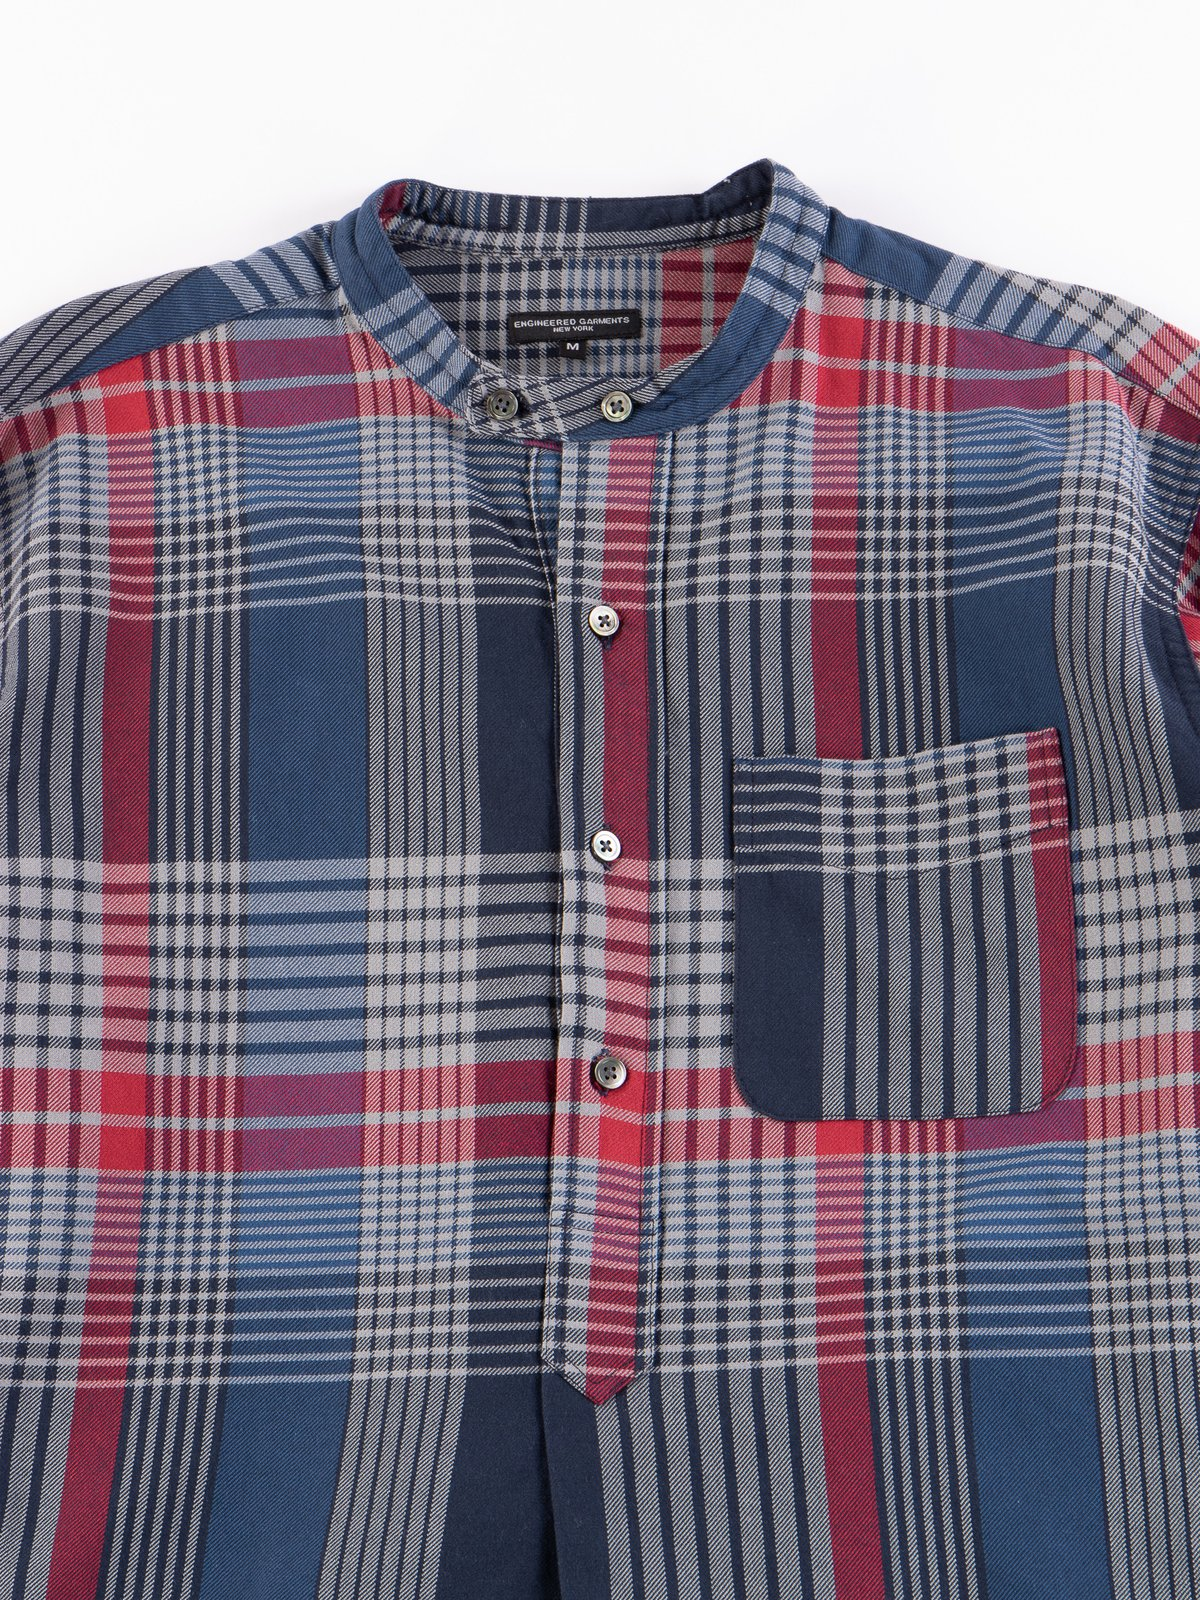 Navy/Grey/Red Cotton Twill Plaid Banded Collar Shirt - Image 3